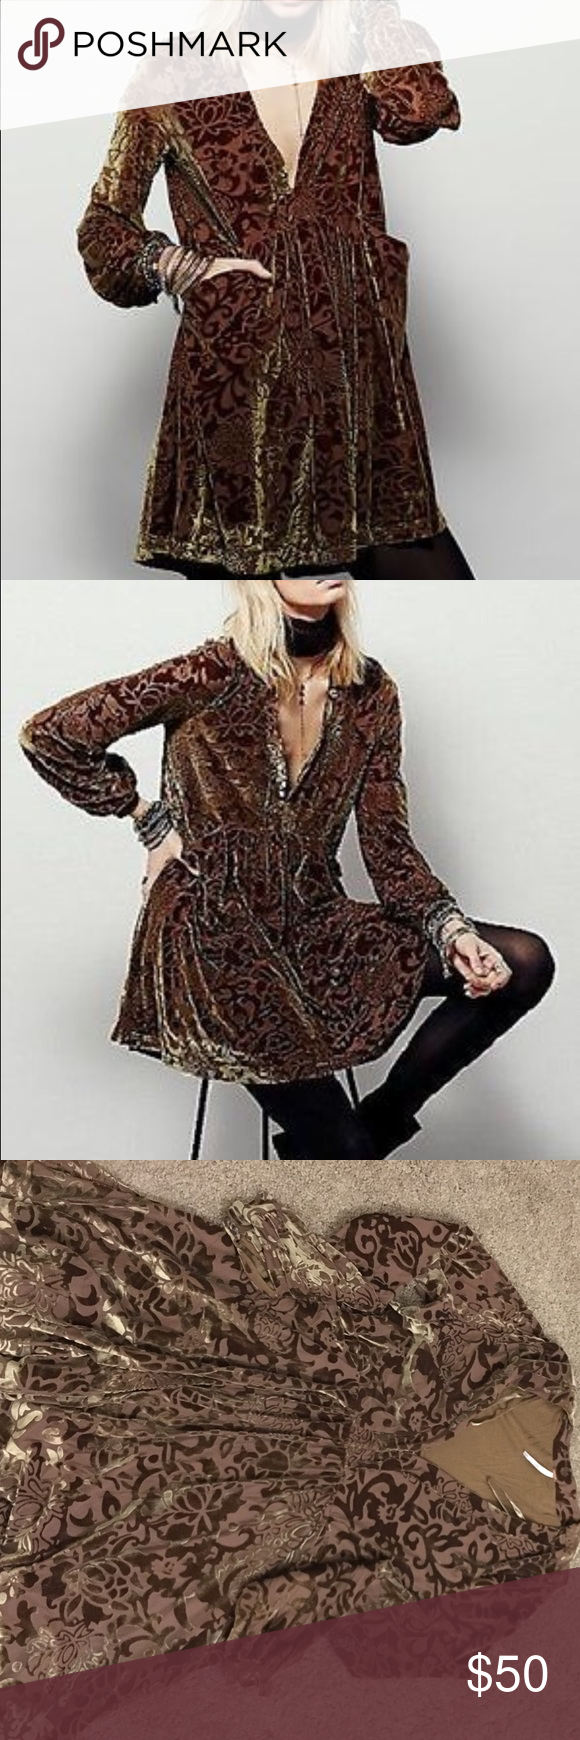 Free People All Night Mini Free People All Night Long Mini dress with long sleeves and velvet detailing. Is called green but has a yellowish-green or gold-like color depending on the light you're in. Worn once. Free People Dresses Mini